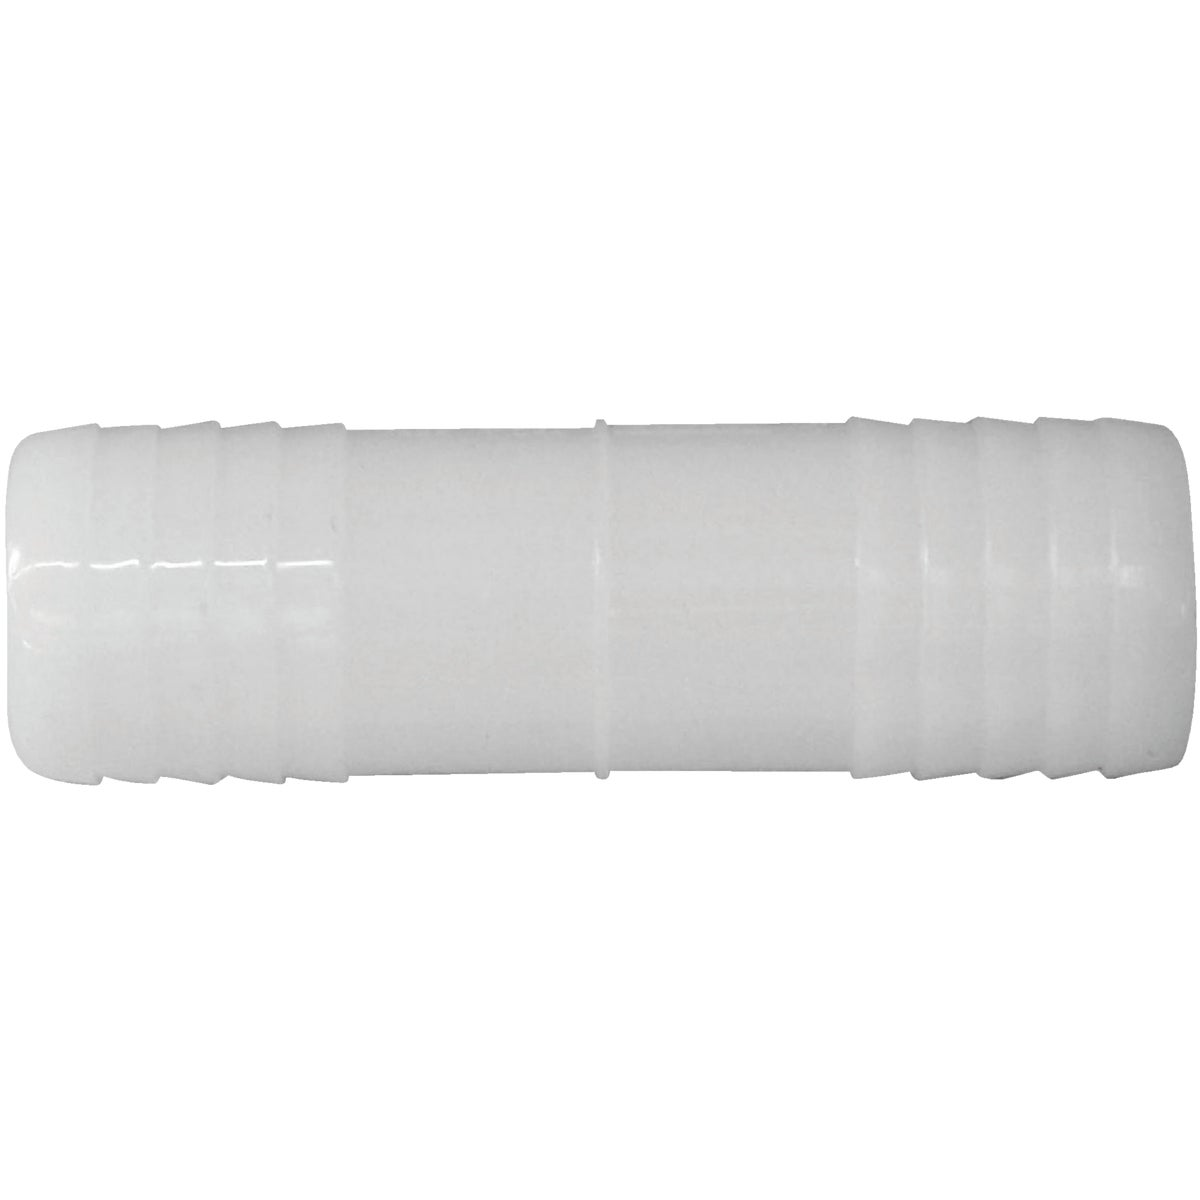 "2"" NYLON INS COUPLING - 360120 by Genova Inc"